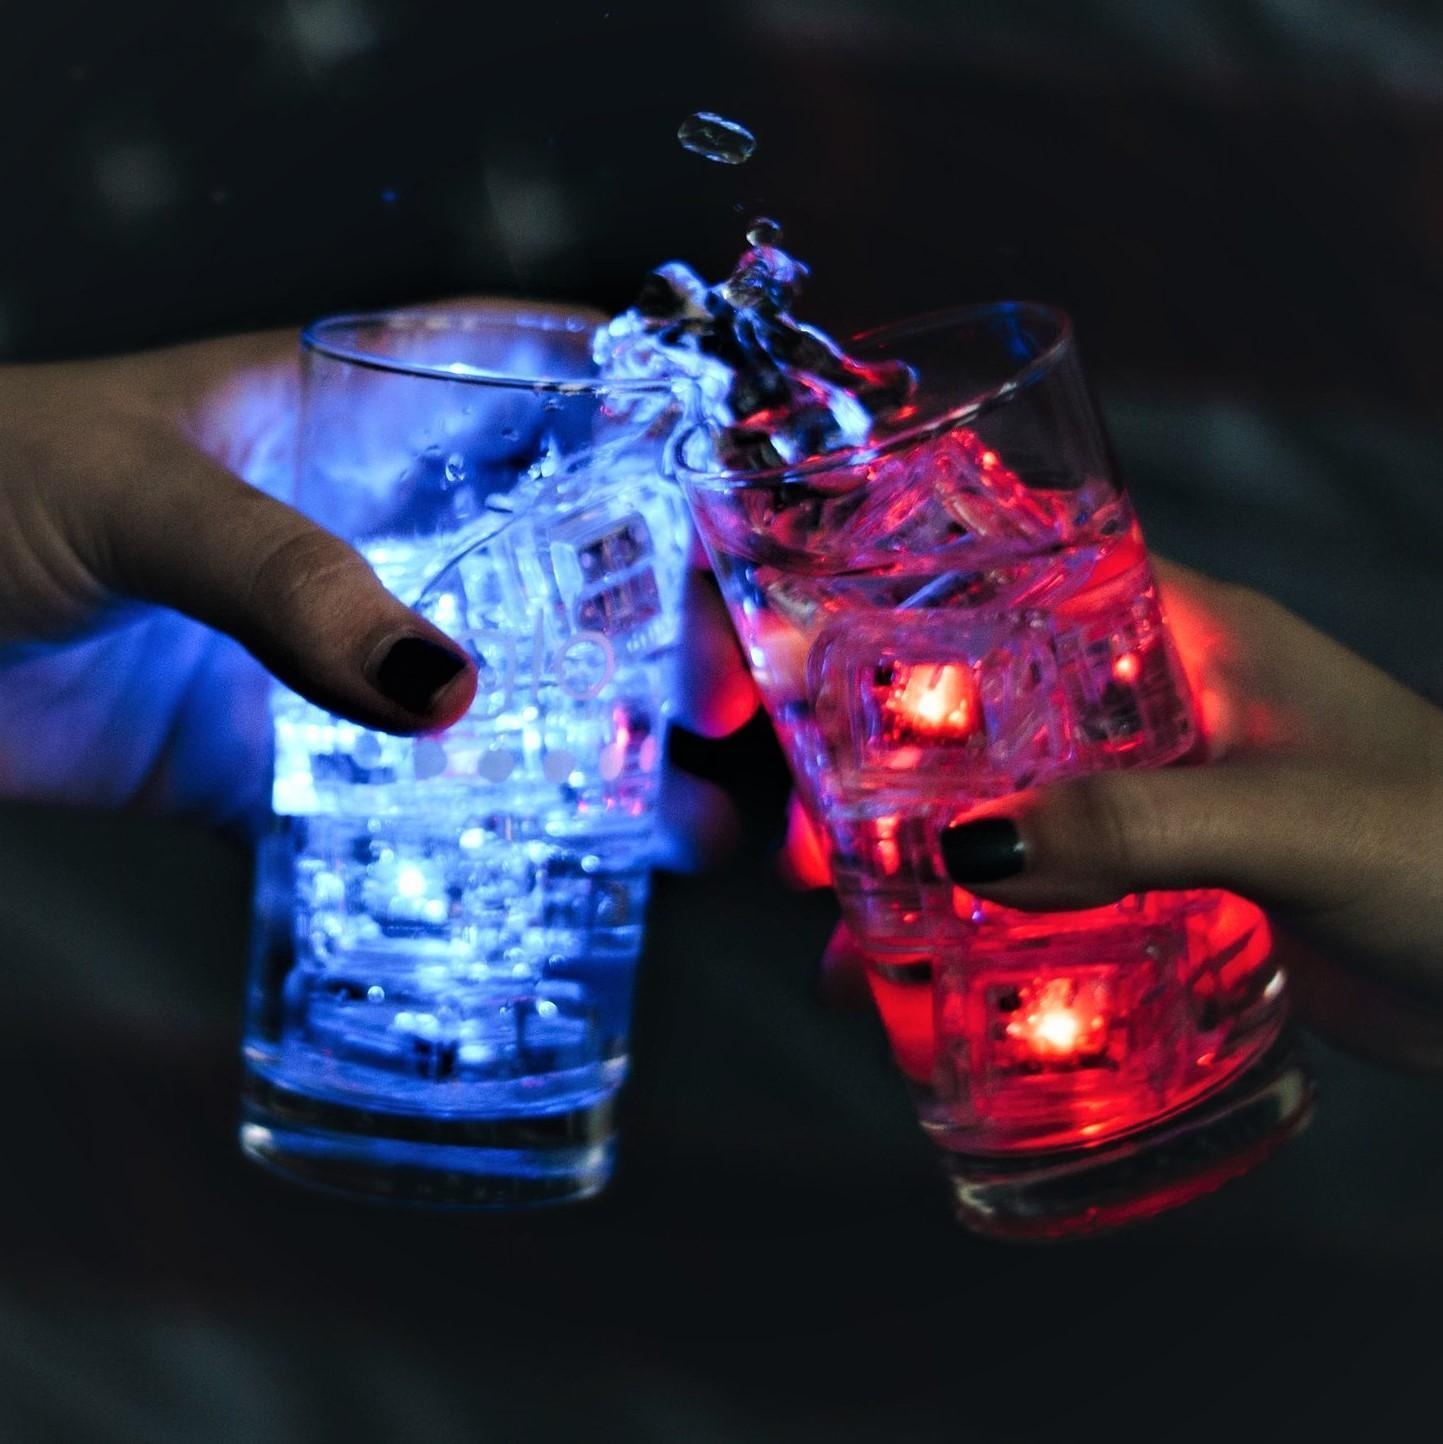 Glo® Liquid-activated cubes